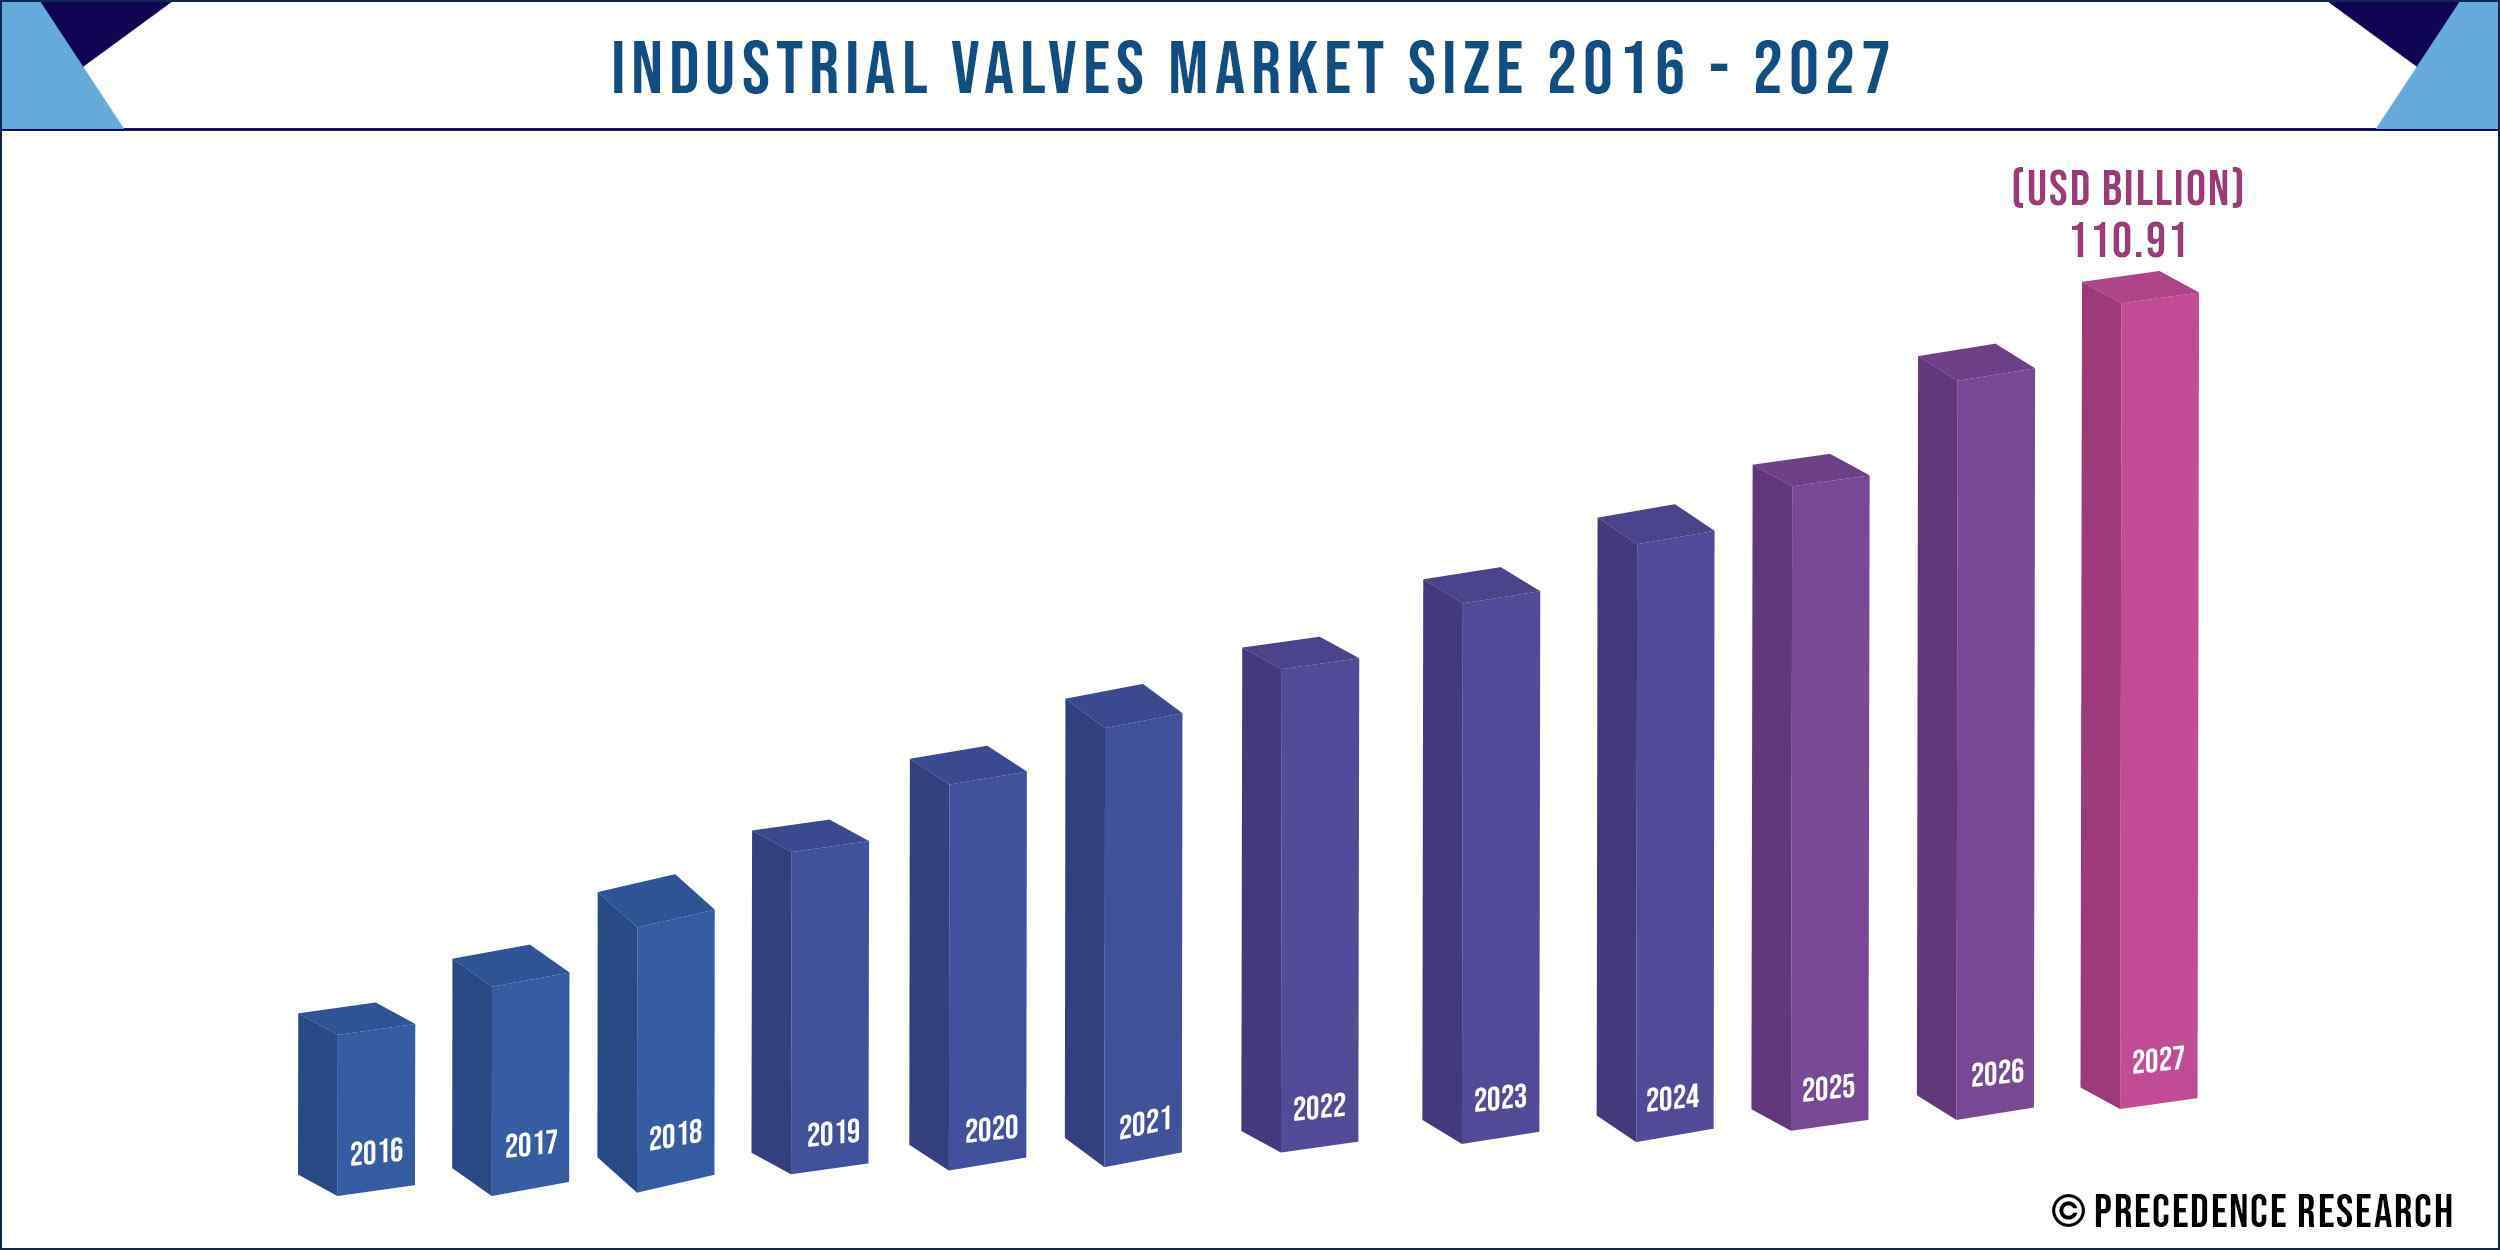 Industrial Valves Market Size 2016 to 2027